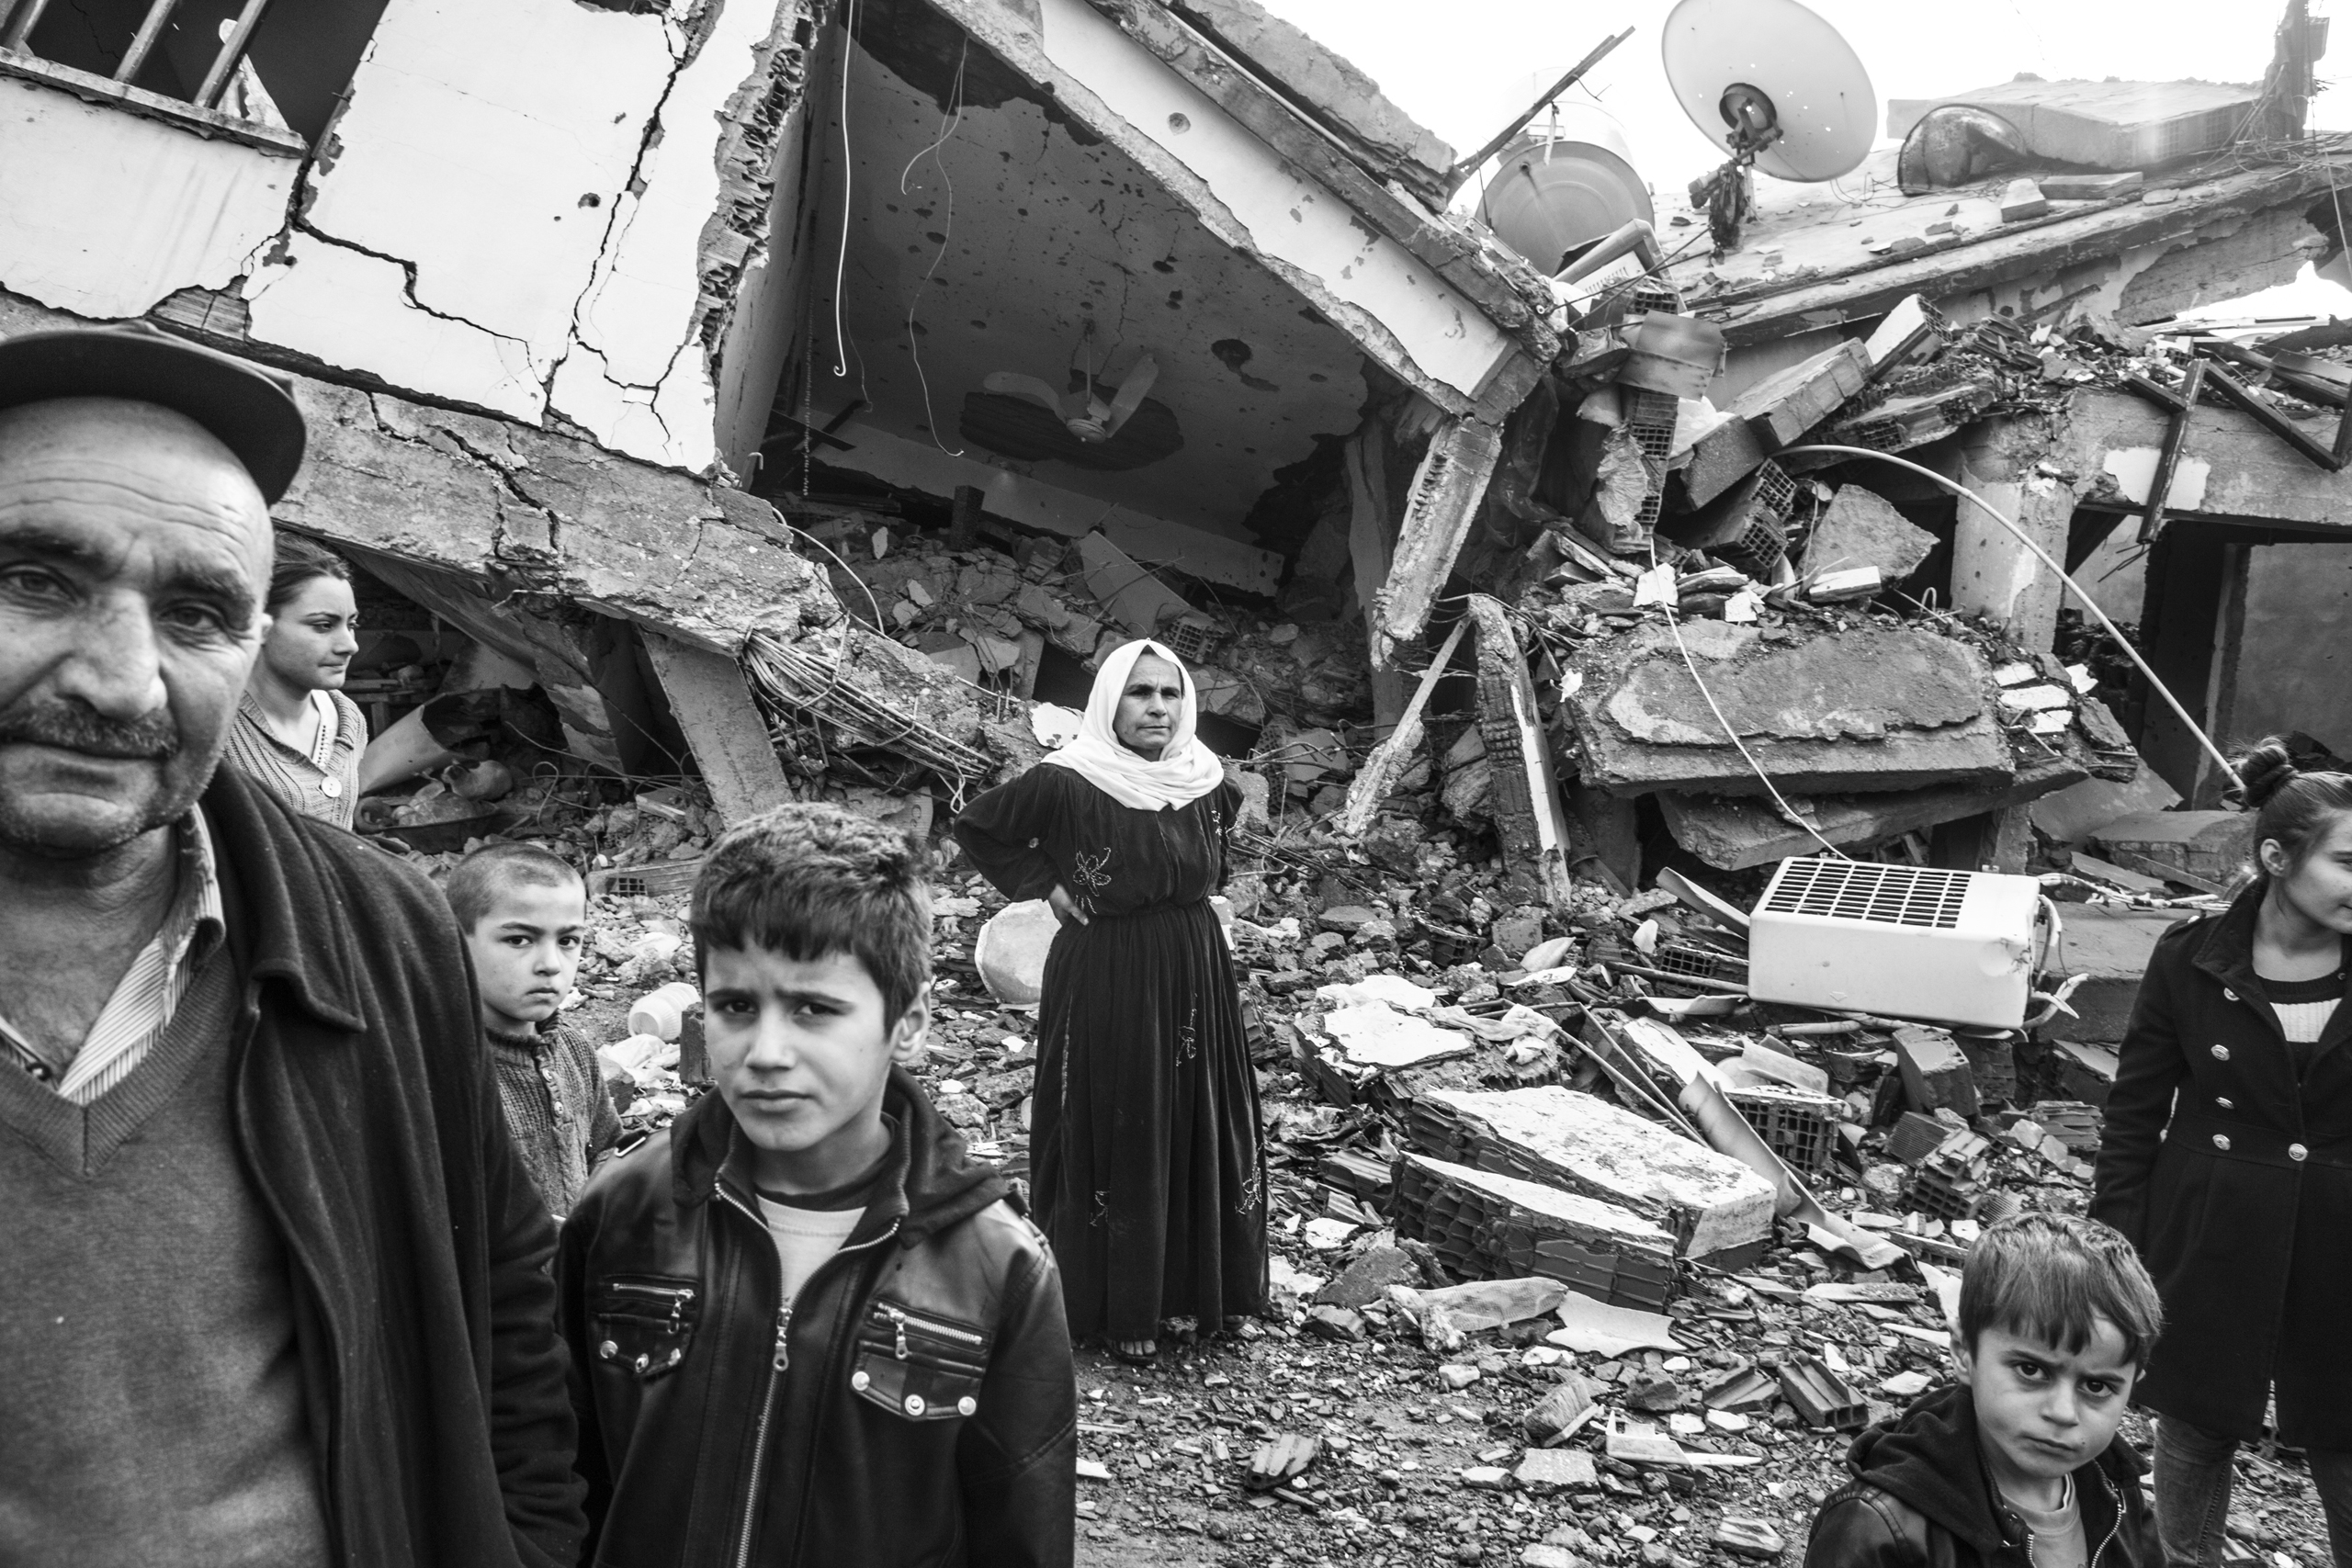 A family stands near their home that was damaged during fighting between government troops and separatist Kurdistan Workers Party (PKK) fighters, in the Kurdish town of Silopi, near the border with Iraq, Jan. 2016